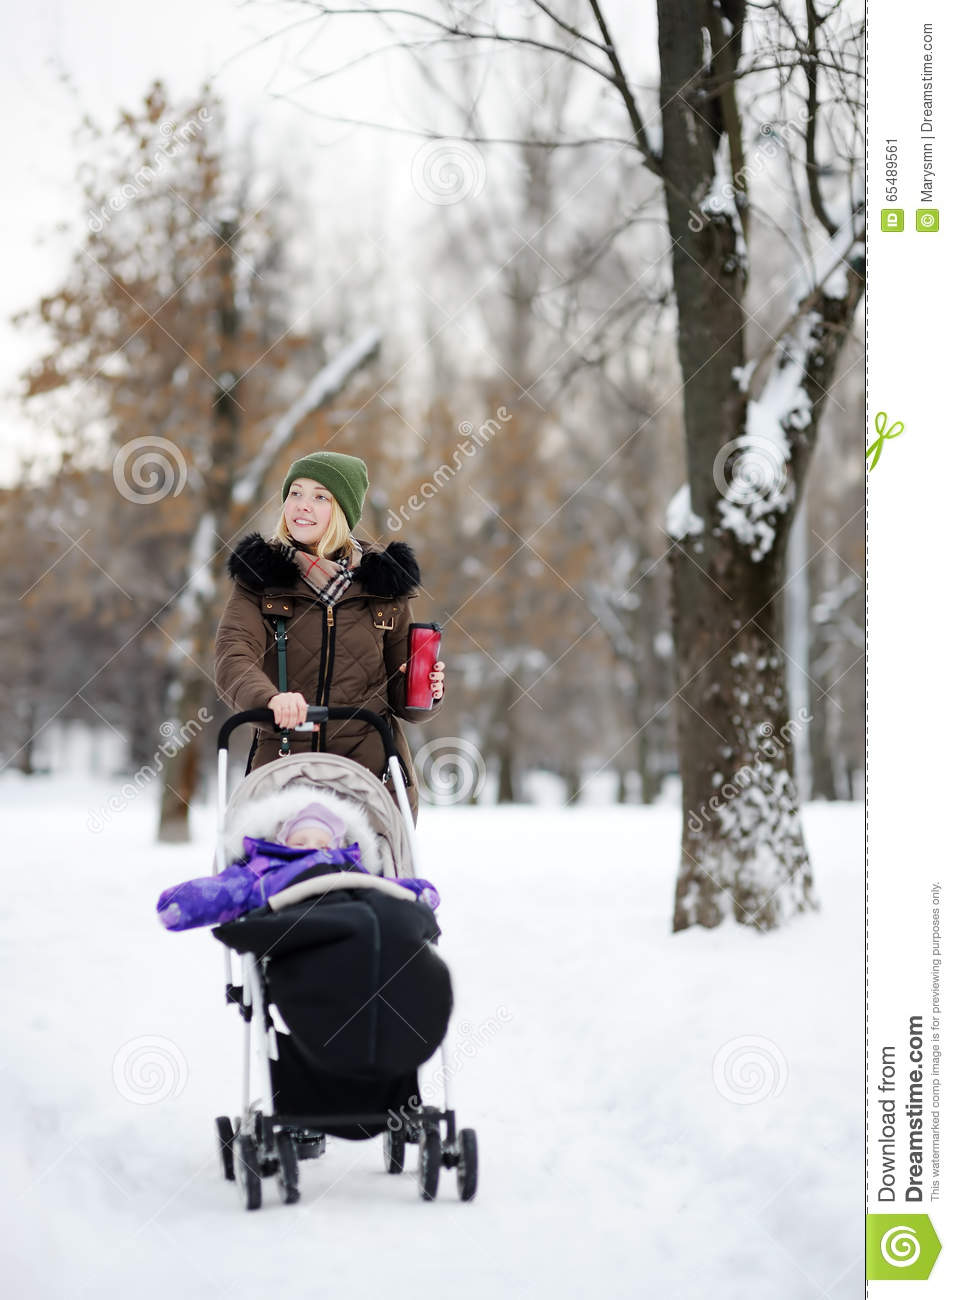 Childcare Pram Young Mother Walking With Baby In Stroller In Winter Park